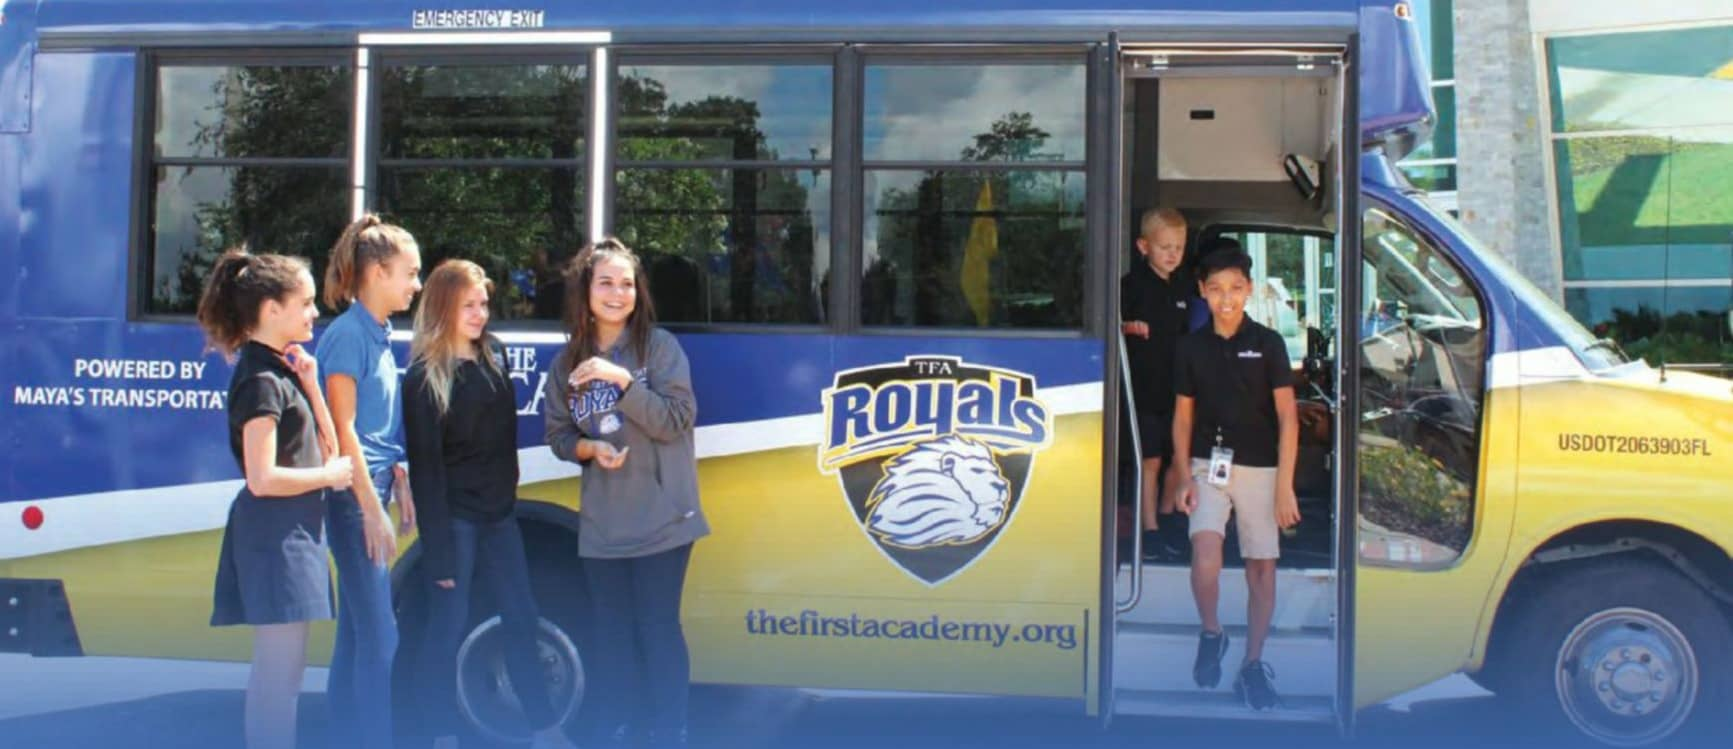 The First Academy Bus – Now Rolling Through Windermere